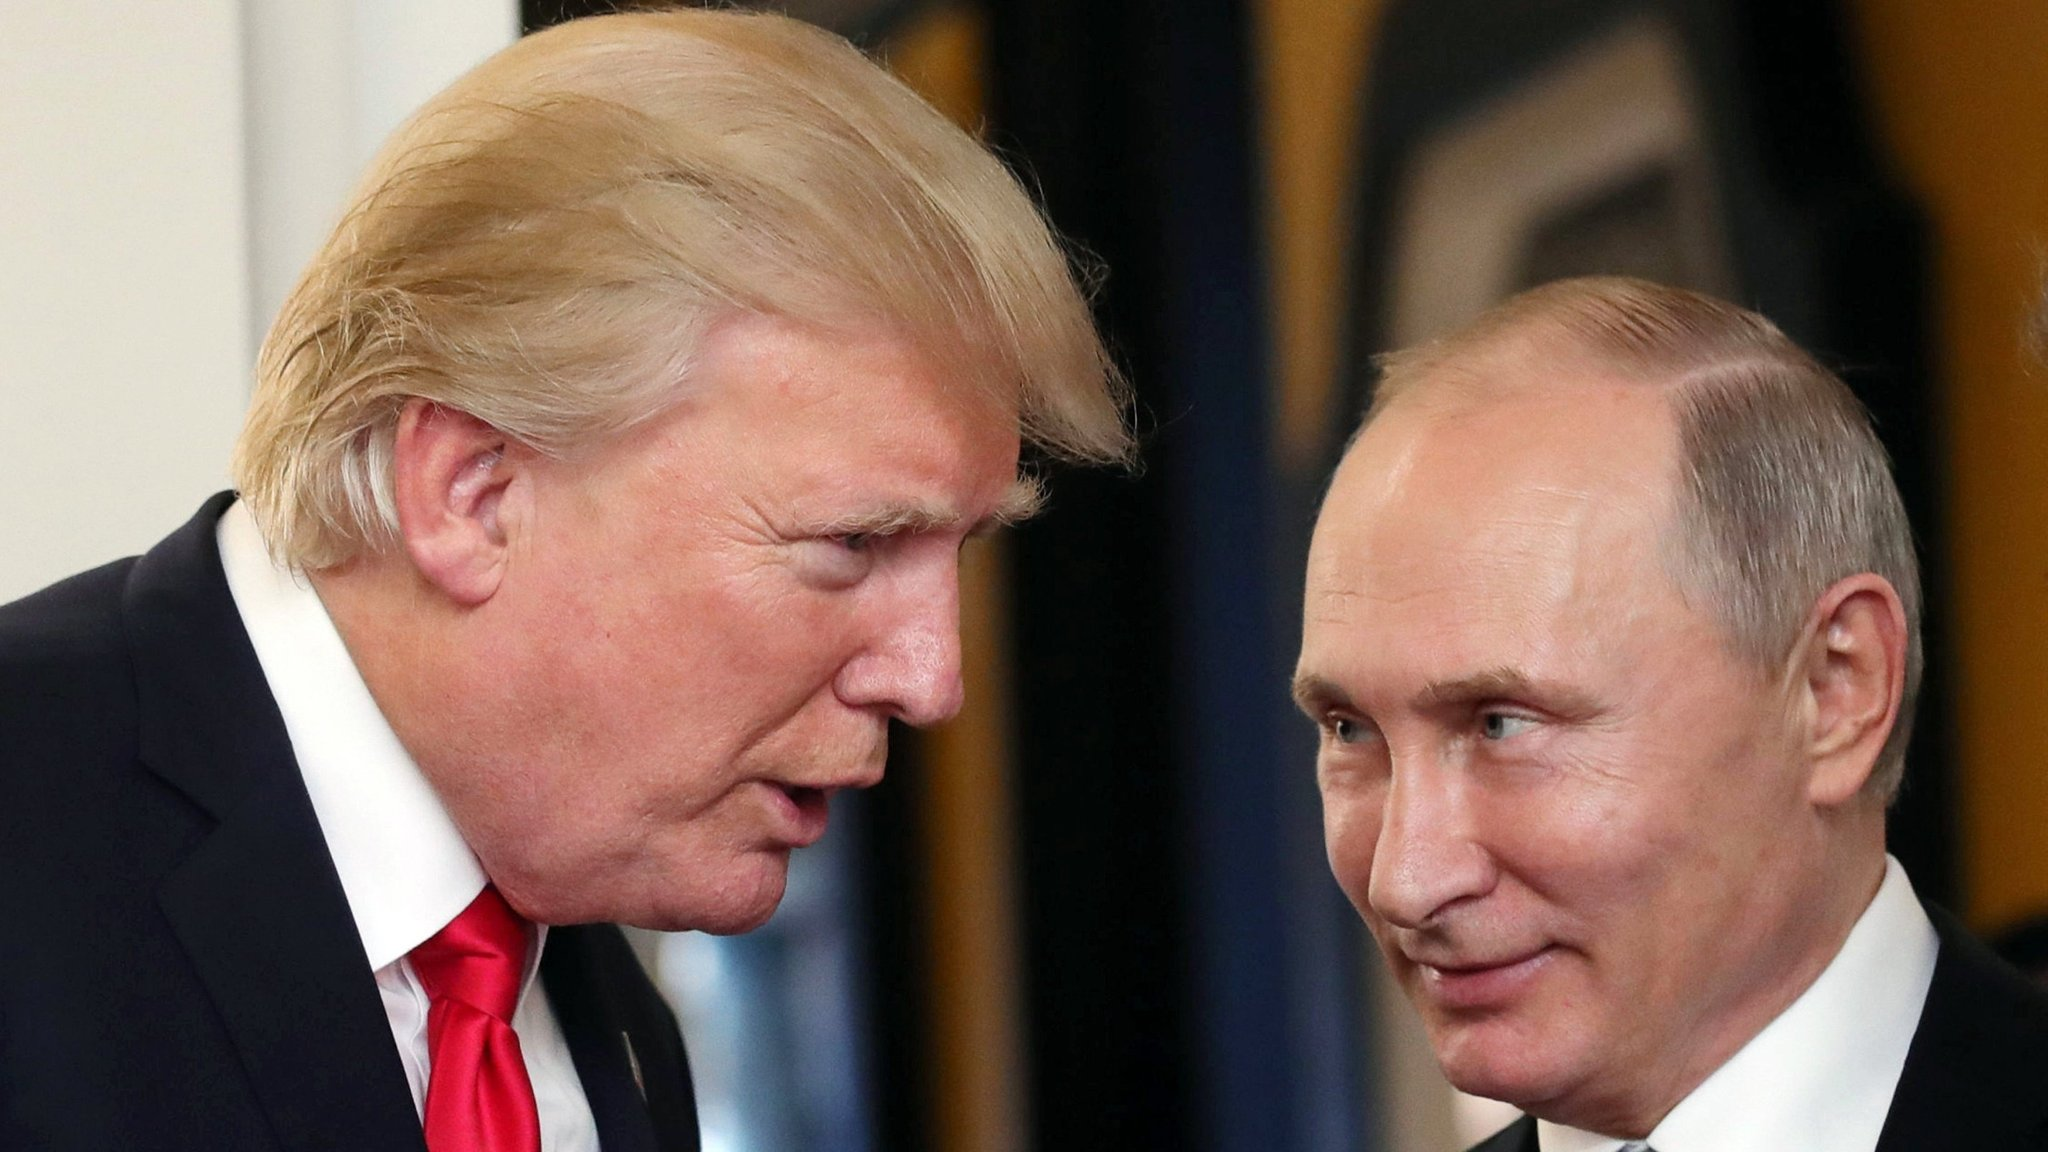 Putin is just a top manager, real power is us